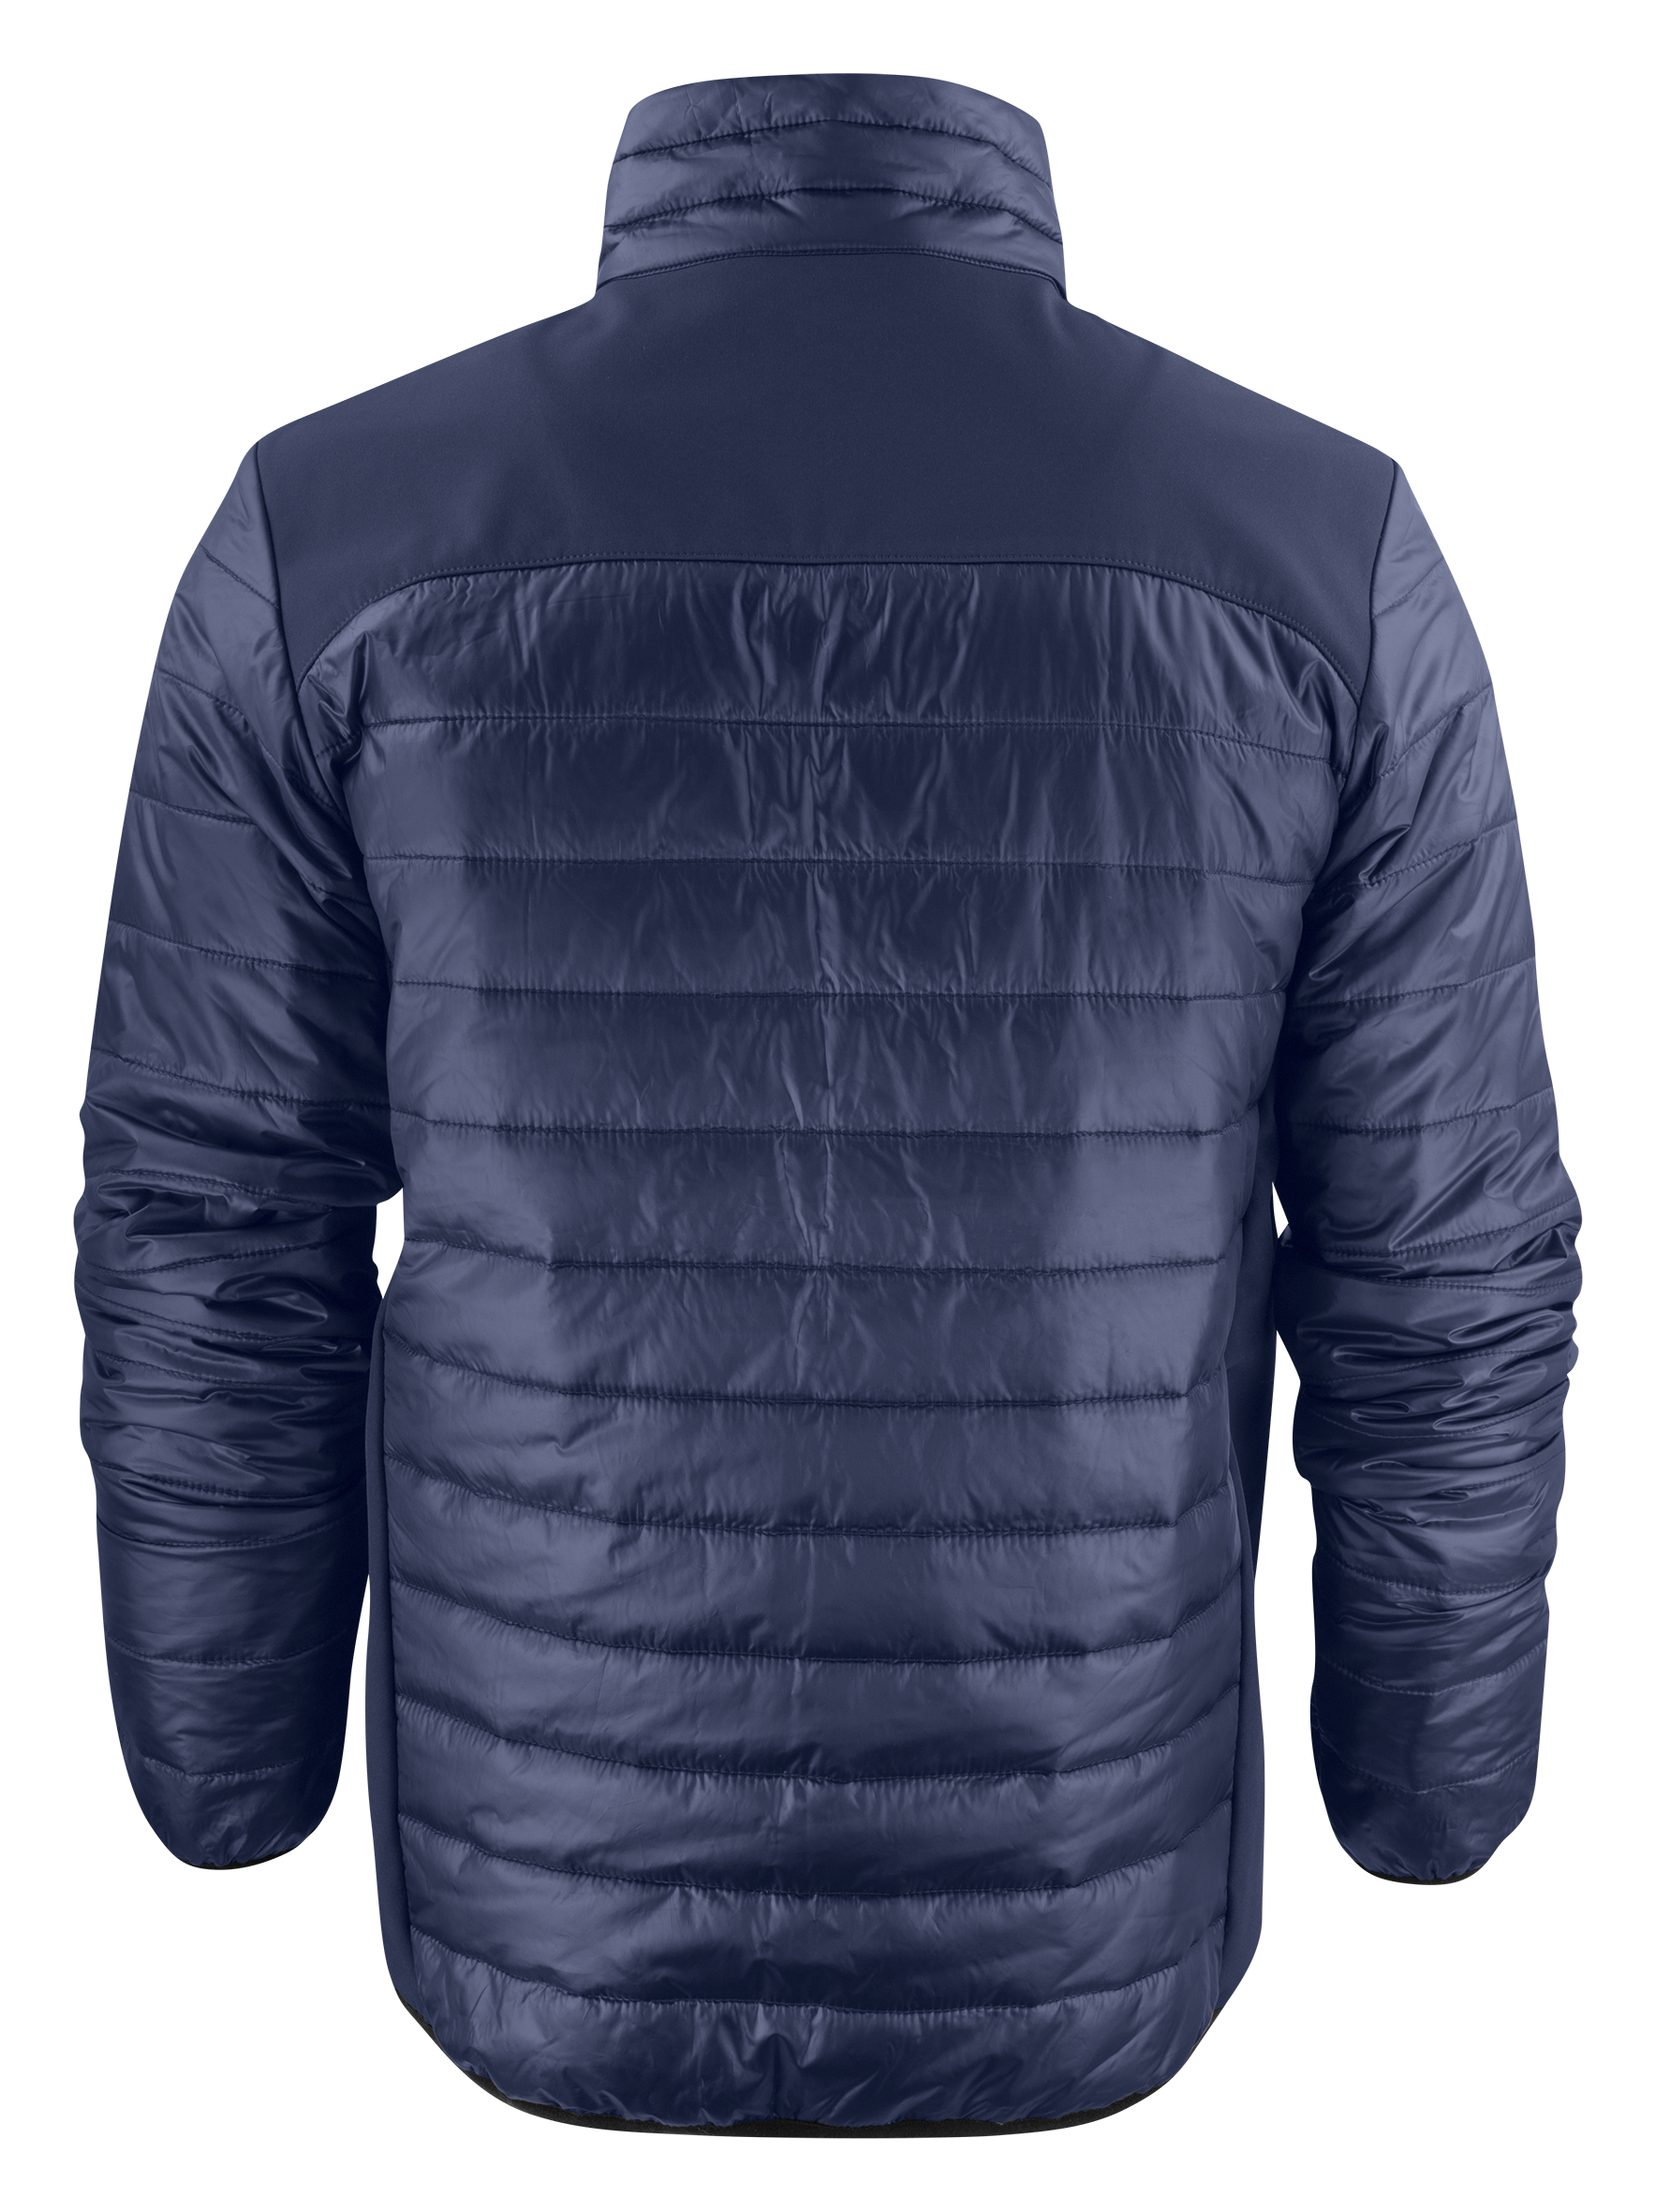 Back View: Unisex Expedition Jacket in Navy